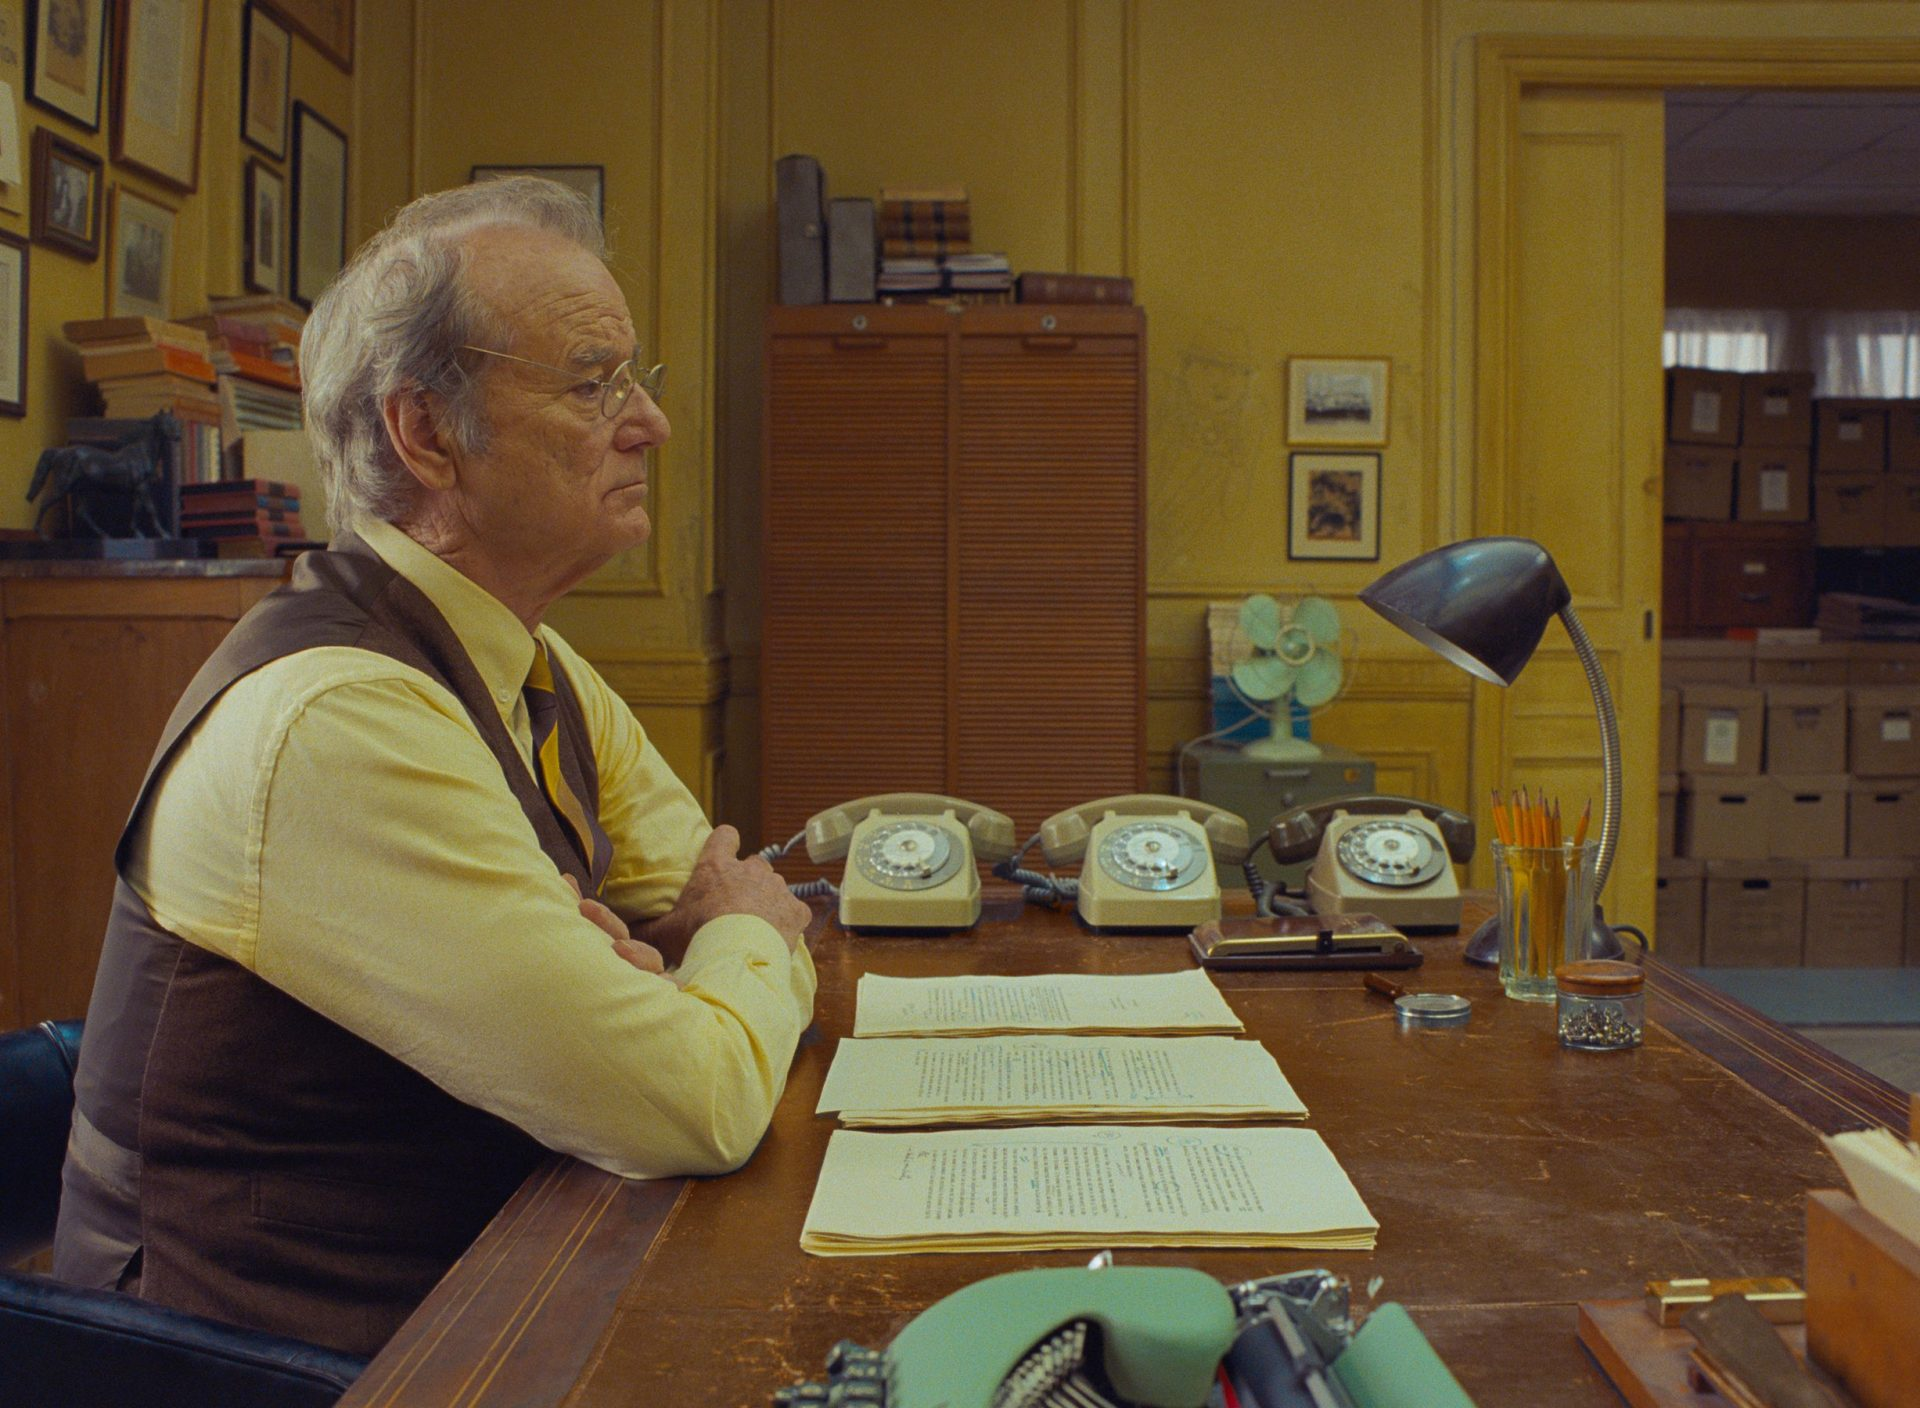 Wes Anderson favourite Bill Murray in a scene from Anderson's The French Dispatch. Film photos: Searchlight Pictures